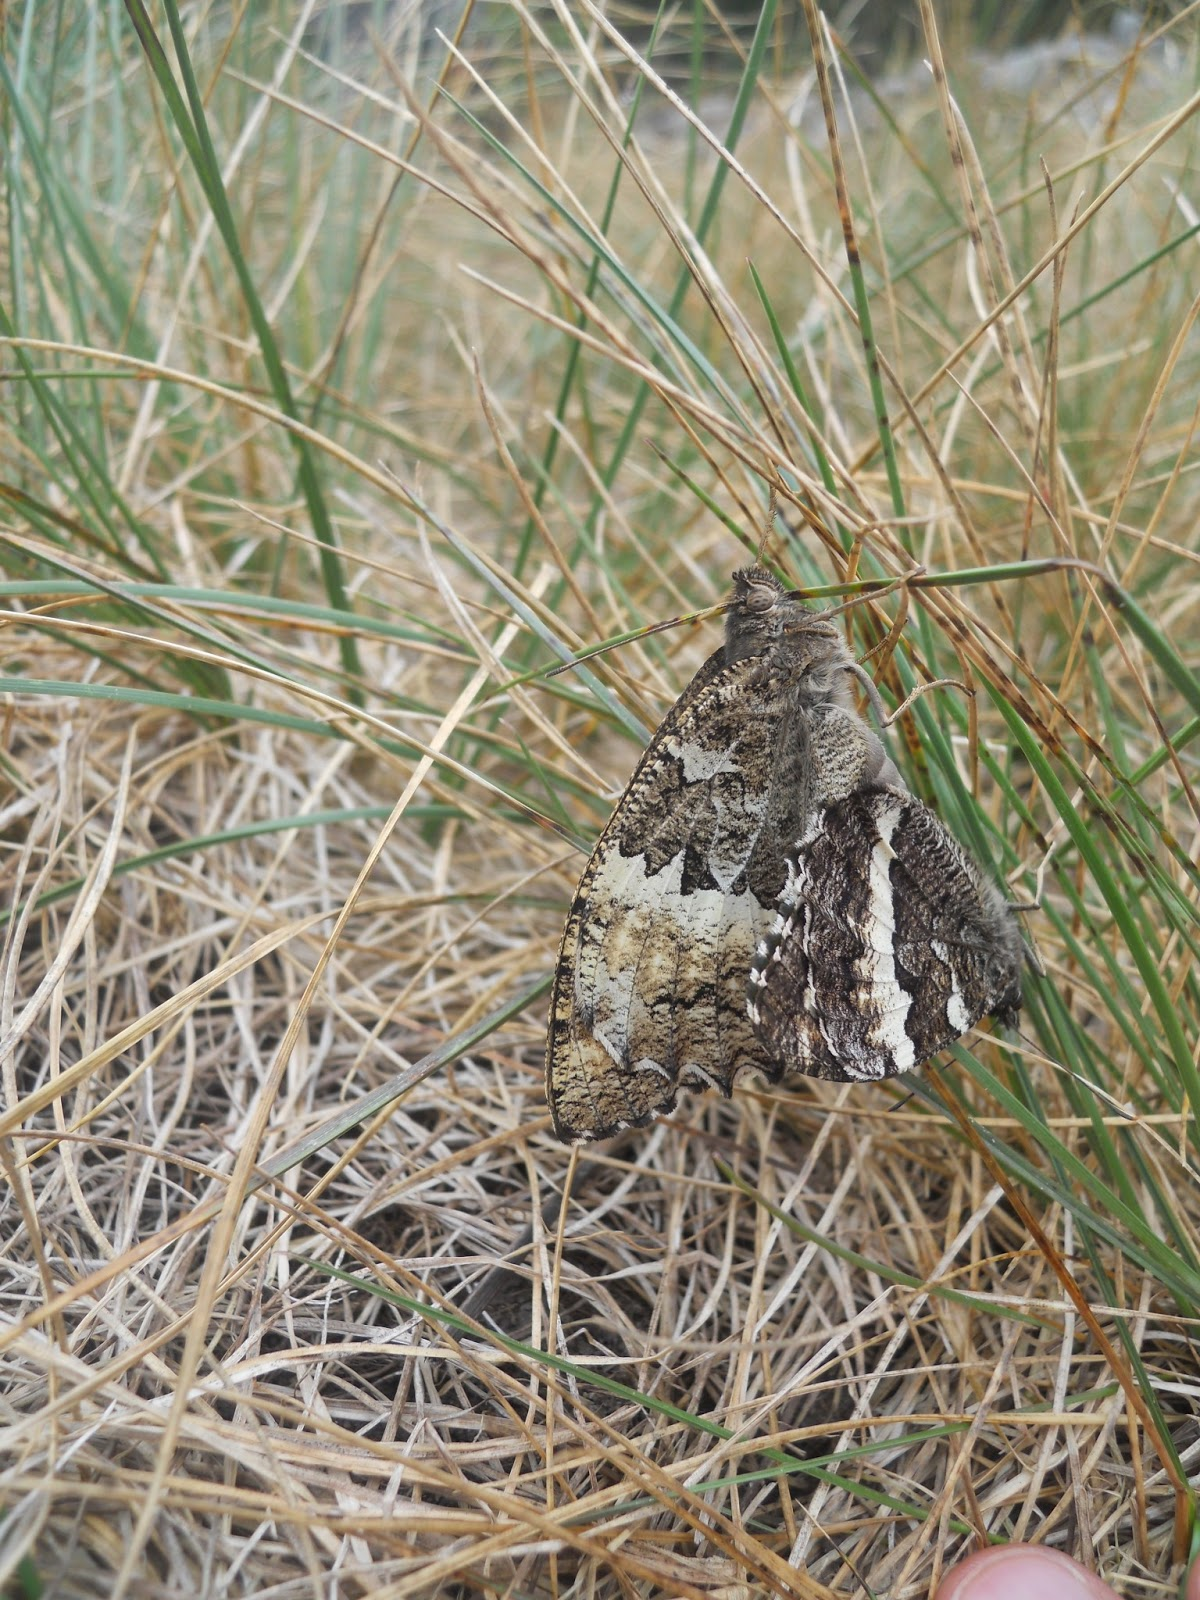 Mariposa Brintesia circe